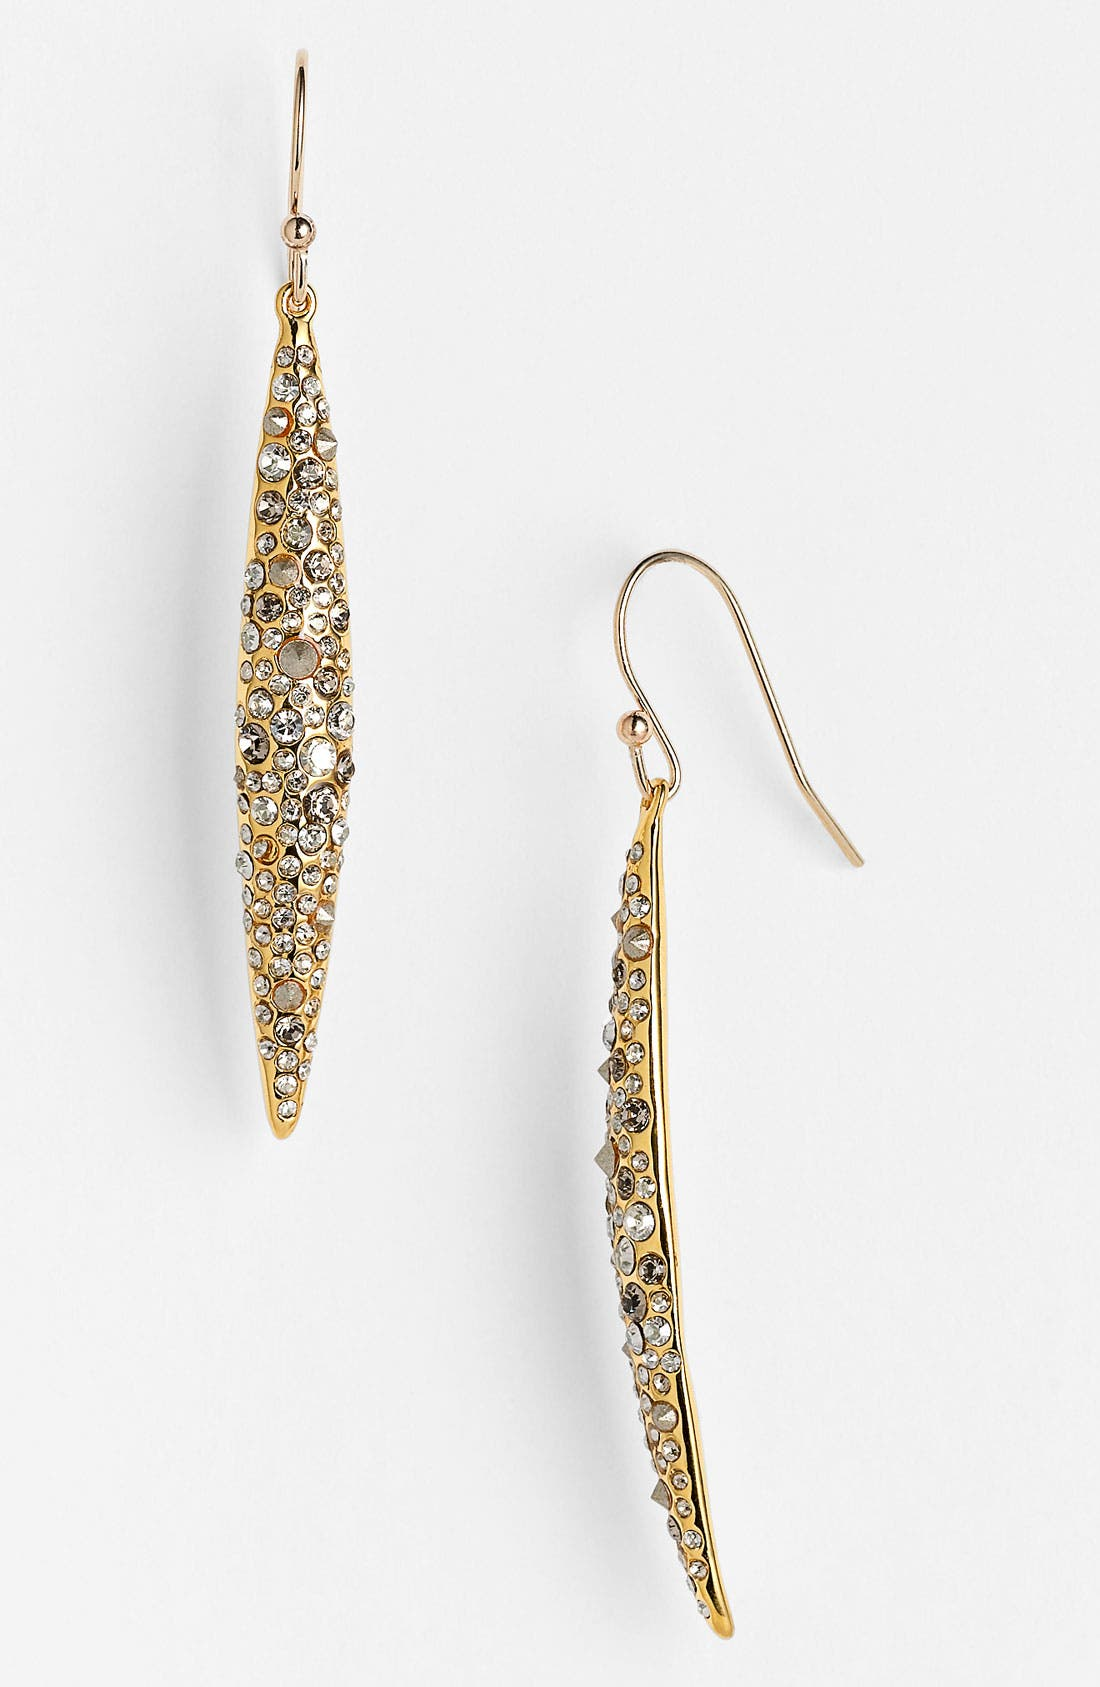 Main Image - Alexis Bittar 'Miss Havisham' Crystal Encrusted Spear Earrings